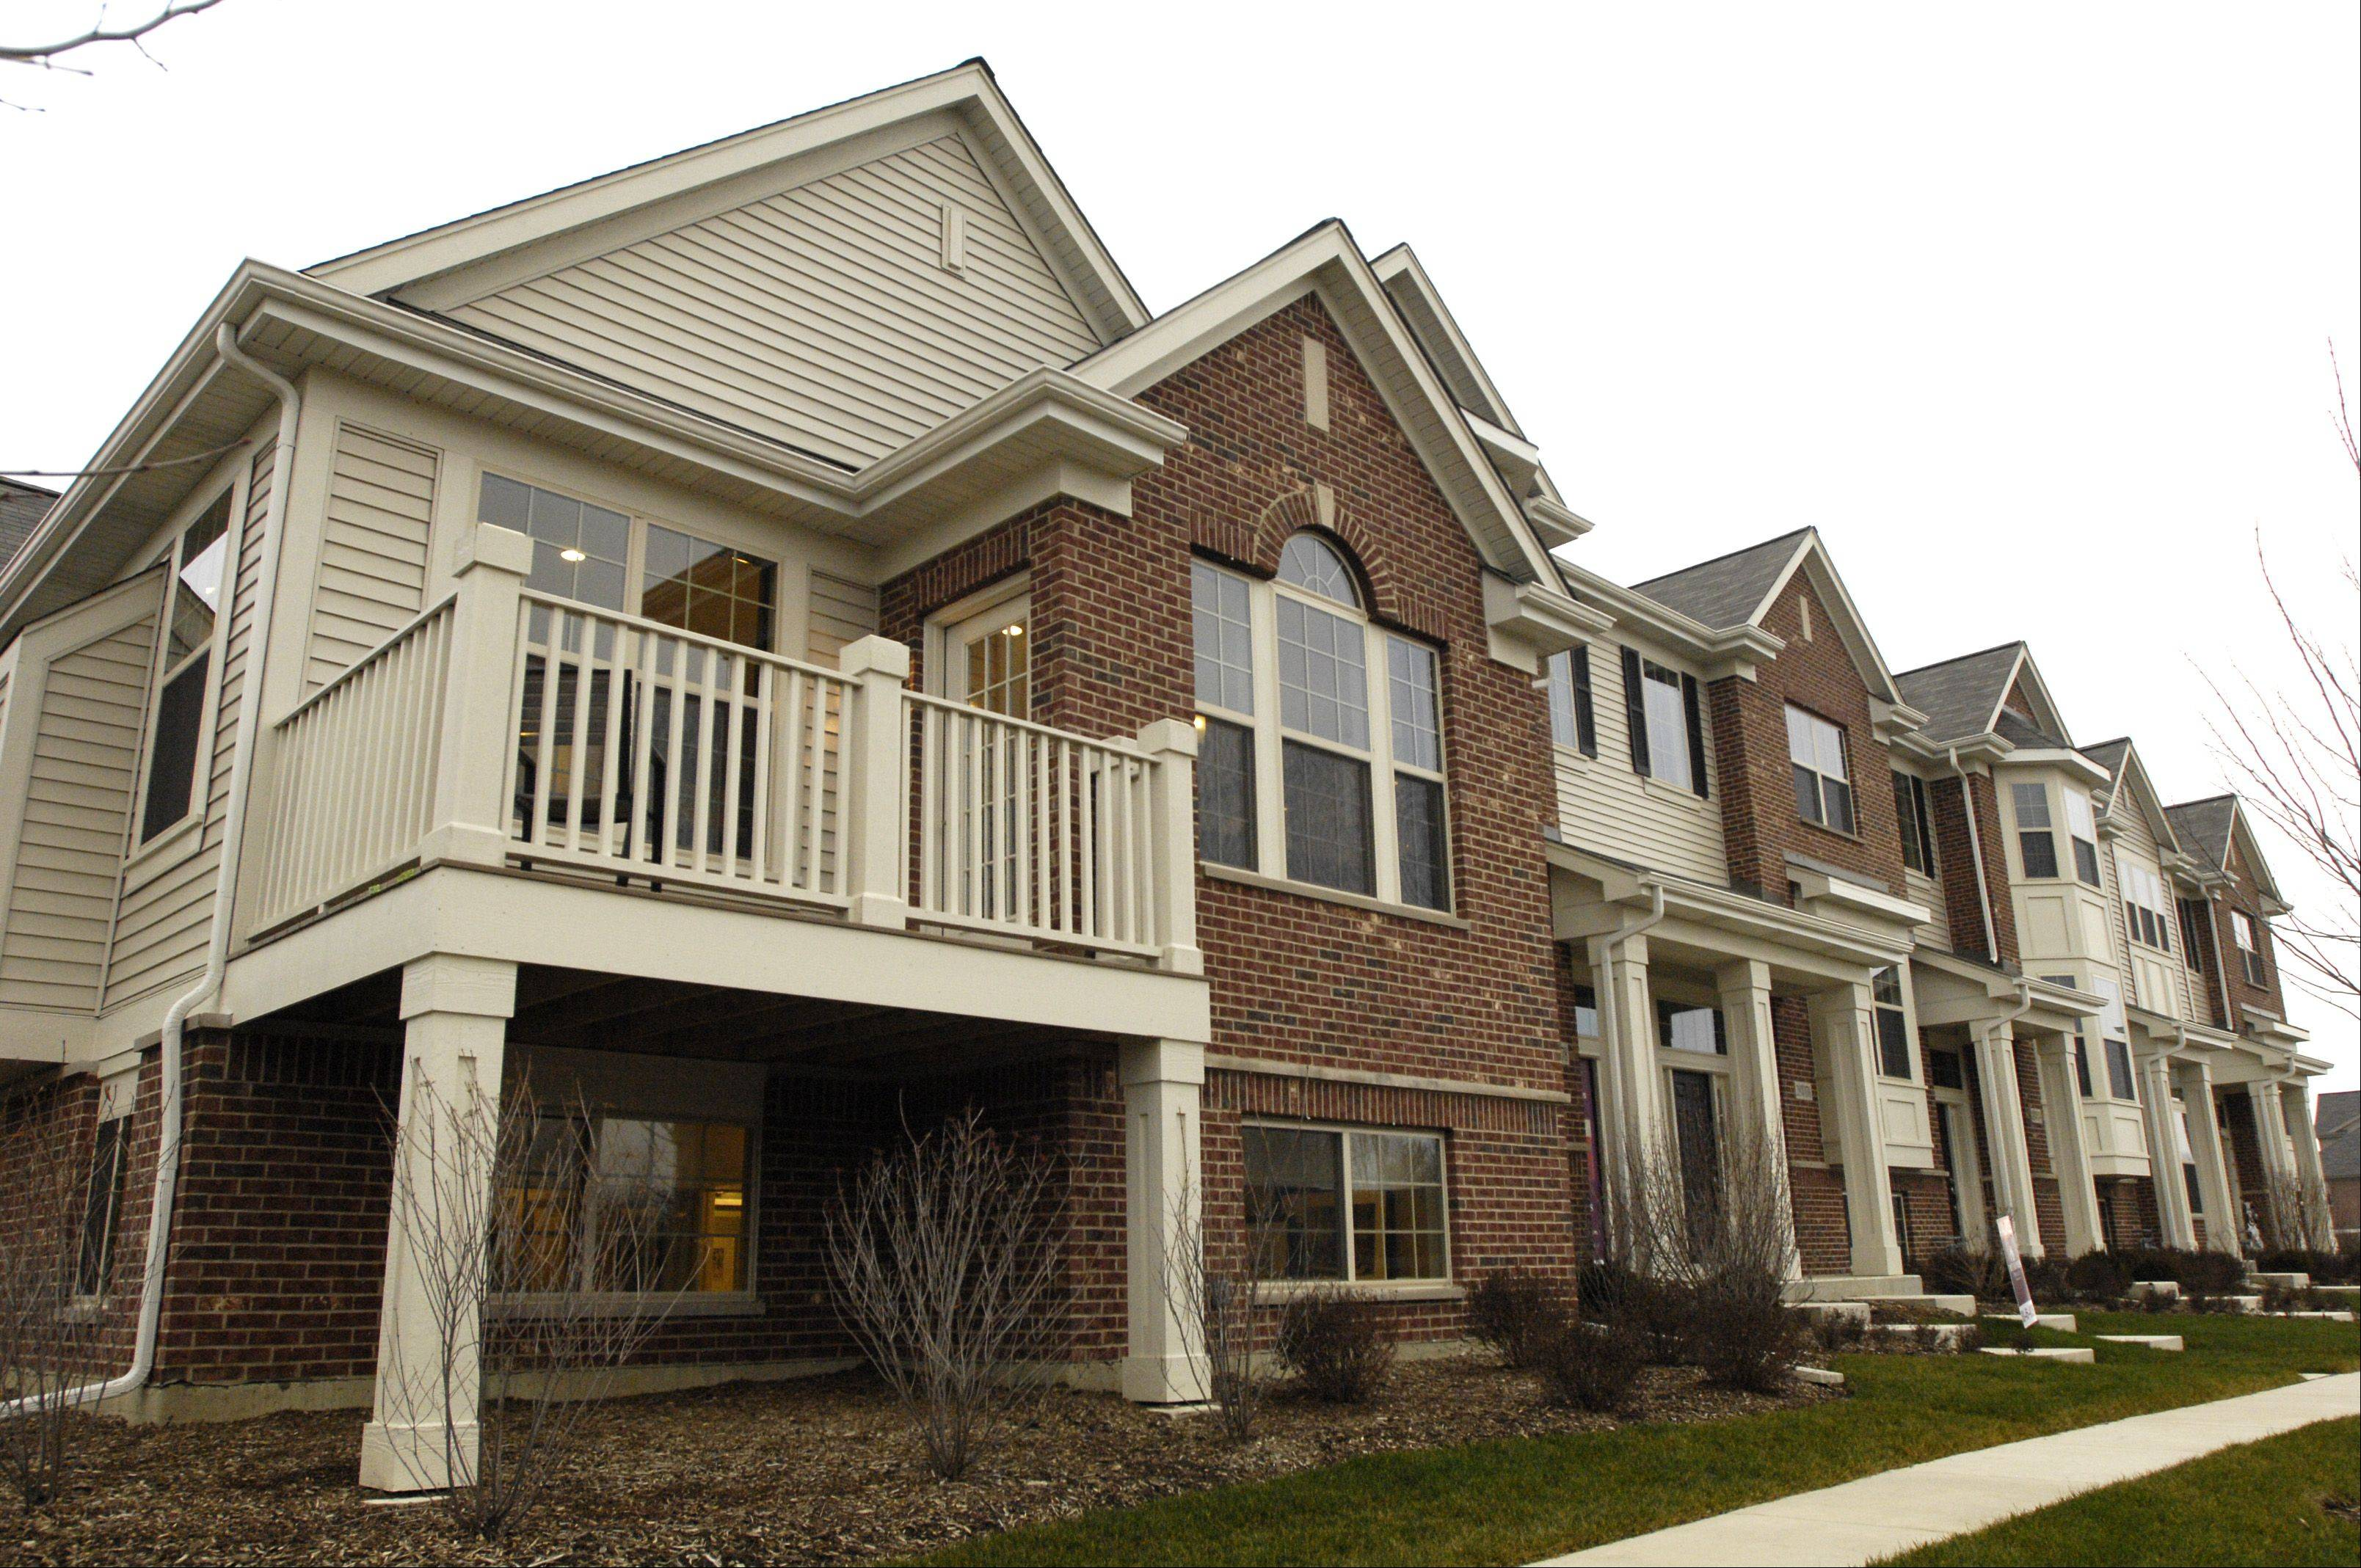 This row of townhouses in the at Shelburne Crossing neighborhood includes the Diversey model.